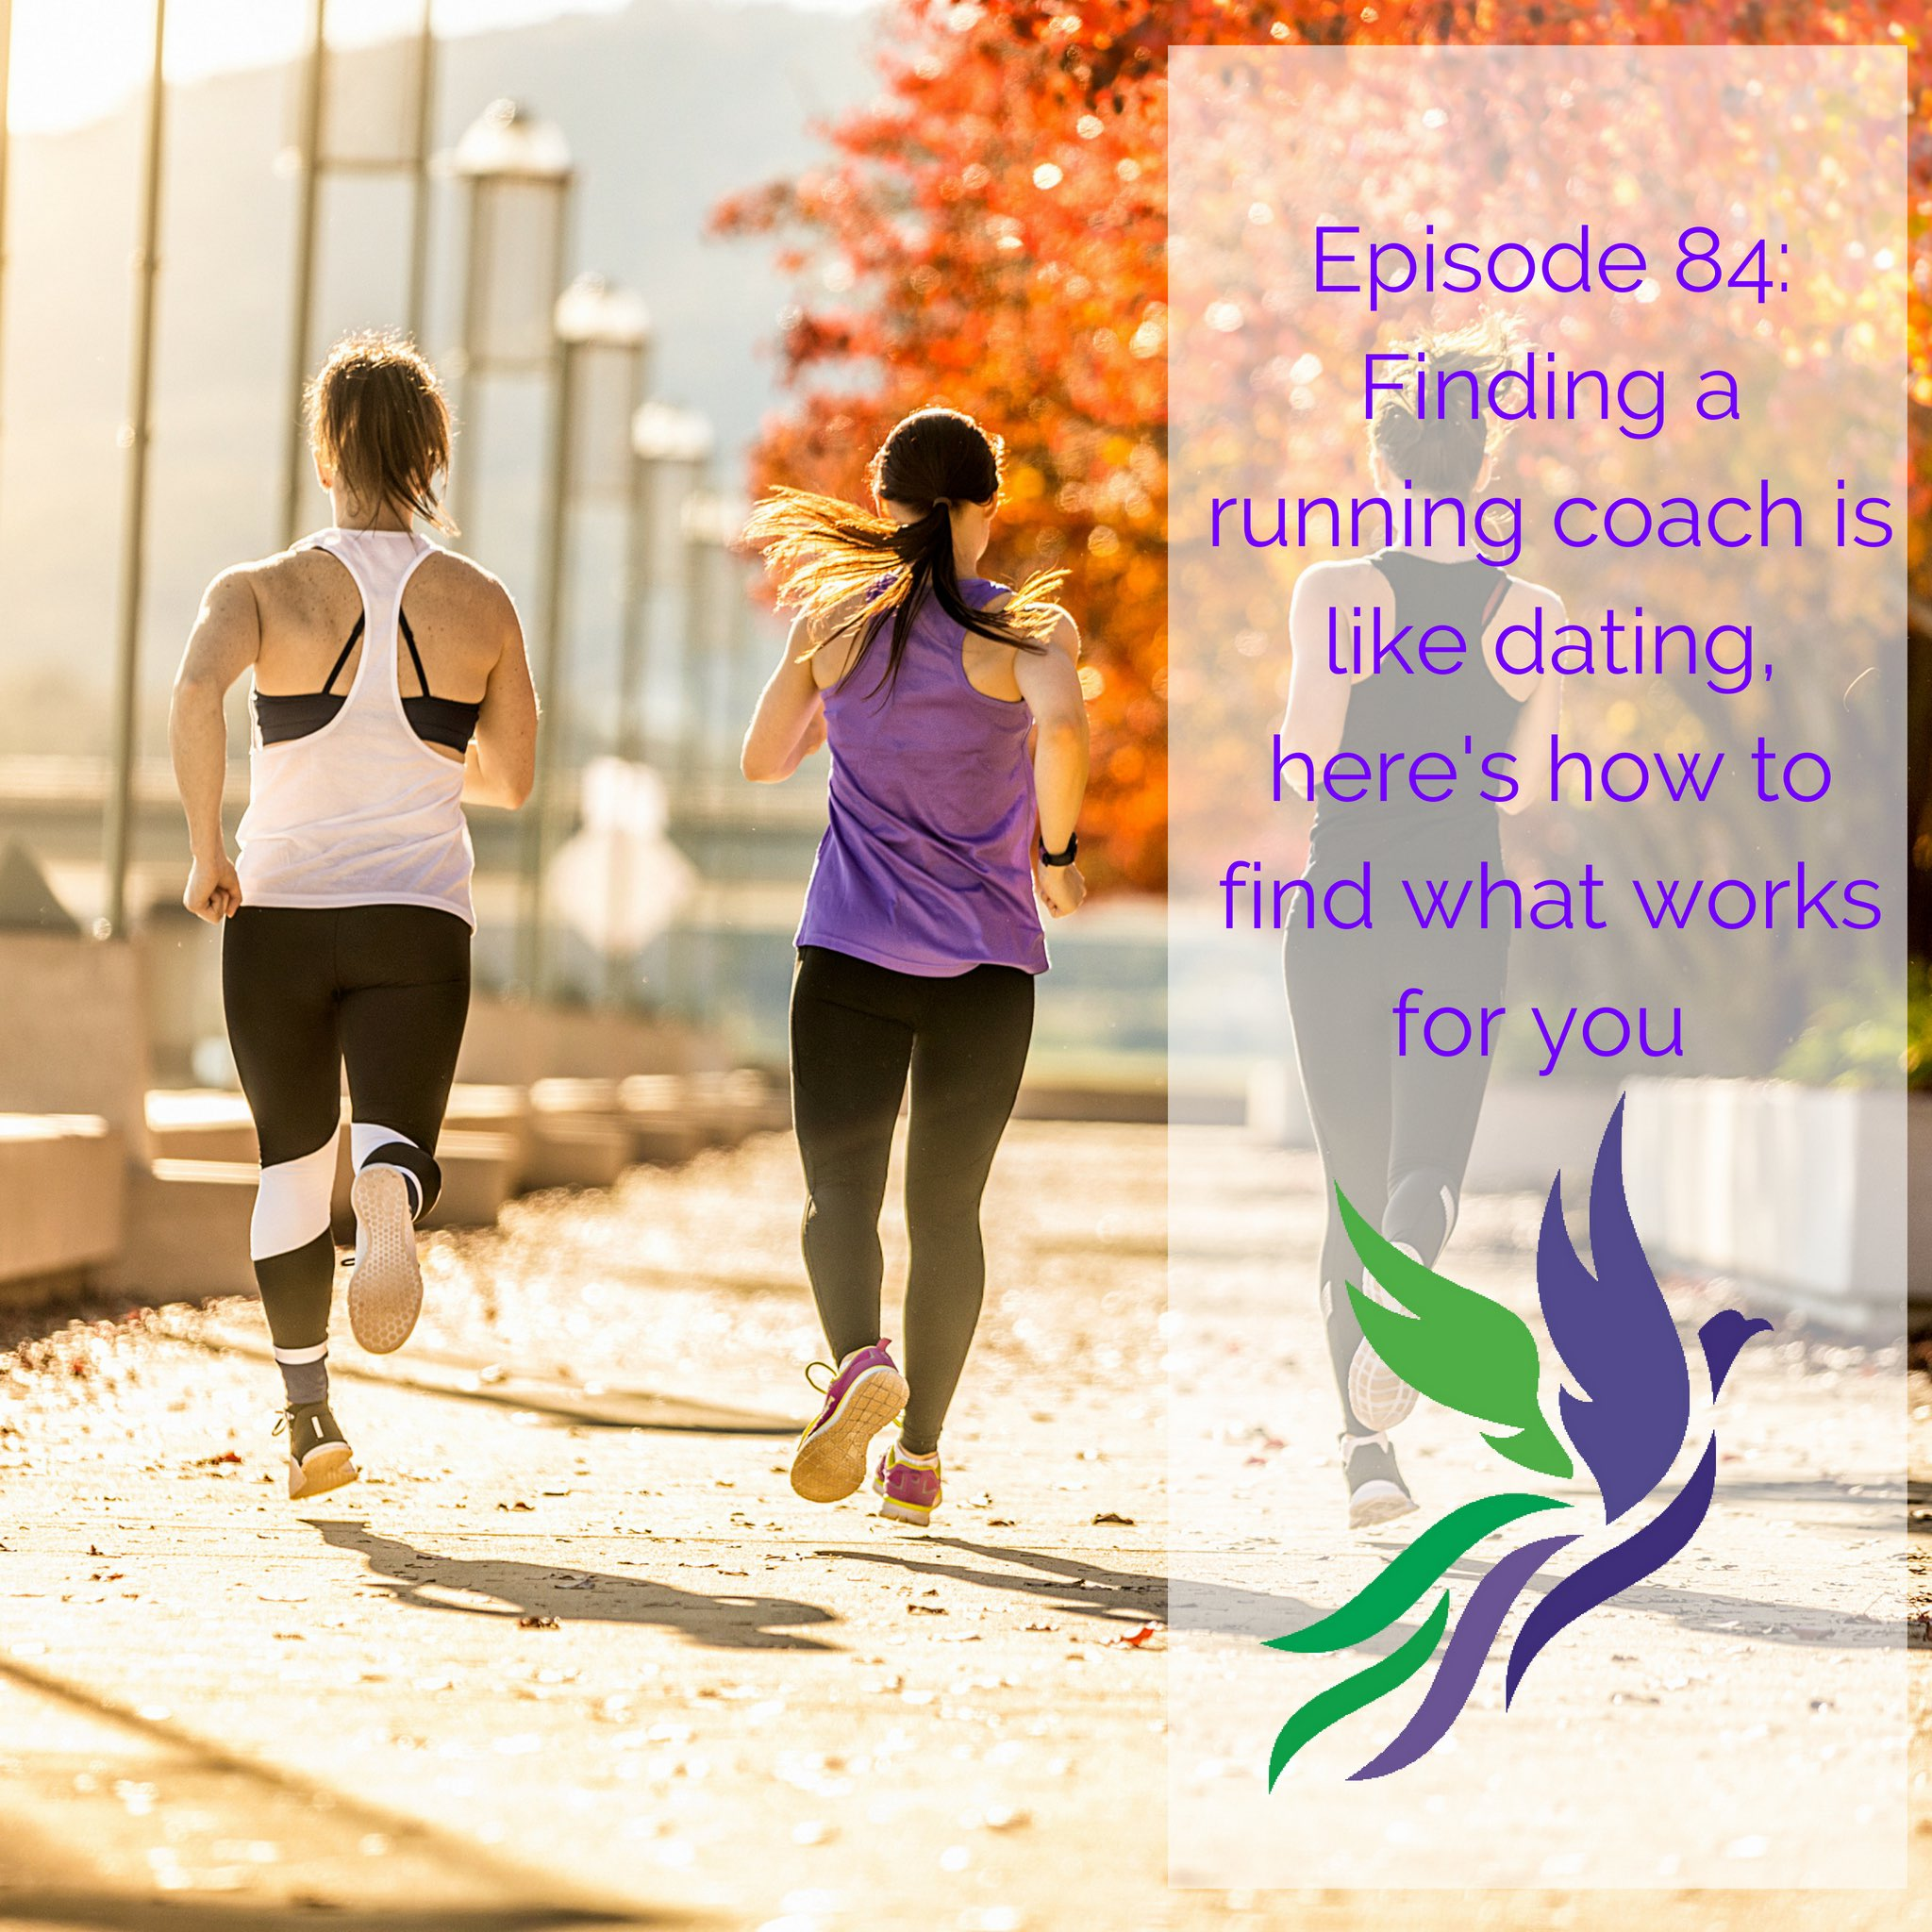 #84 Finding a running coach is like dating, here's how to find what works for you